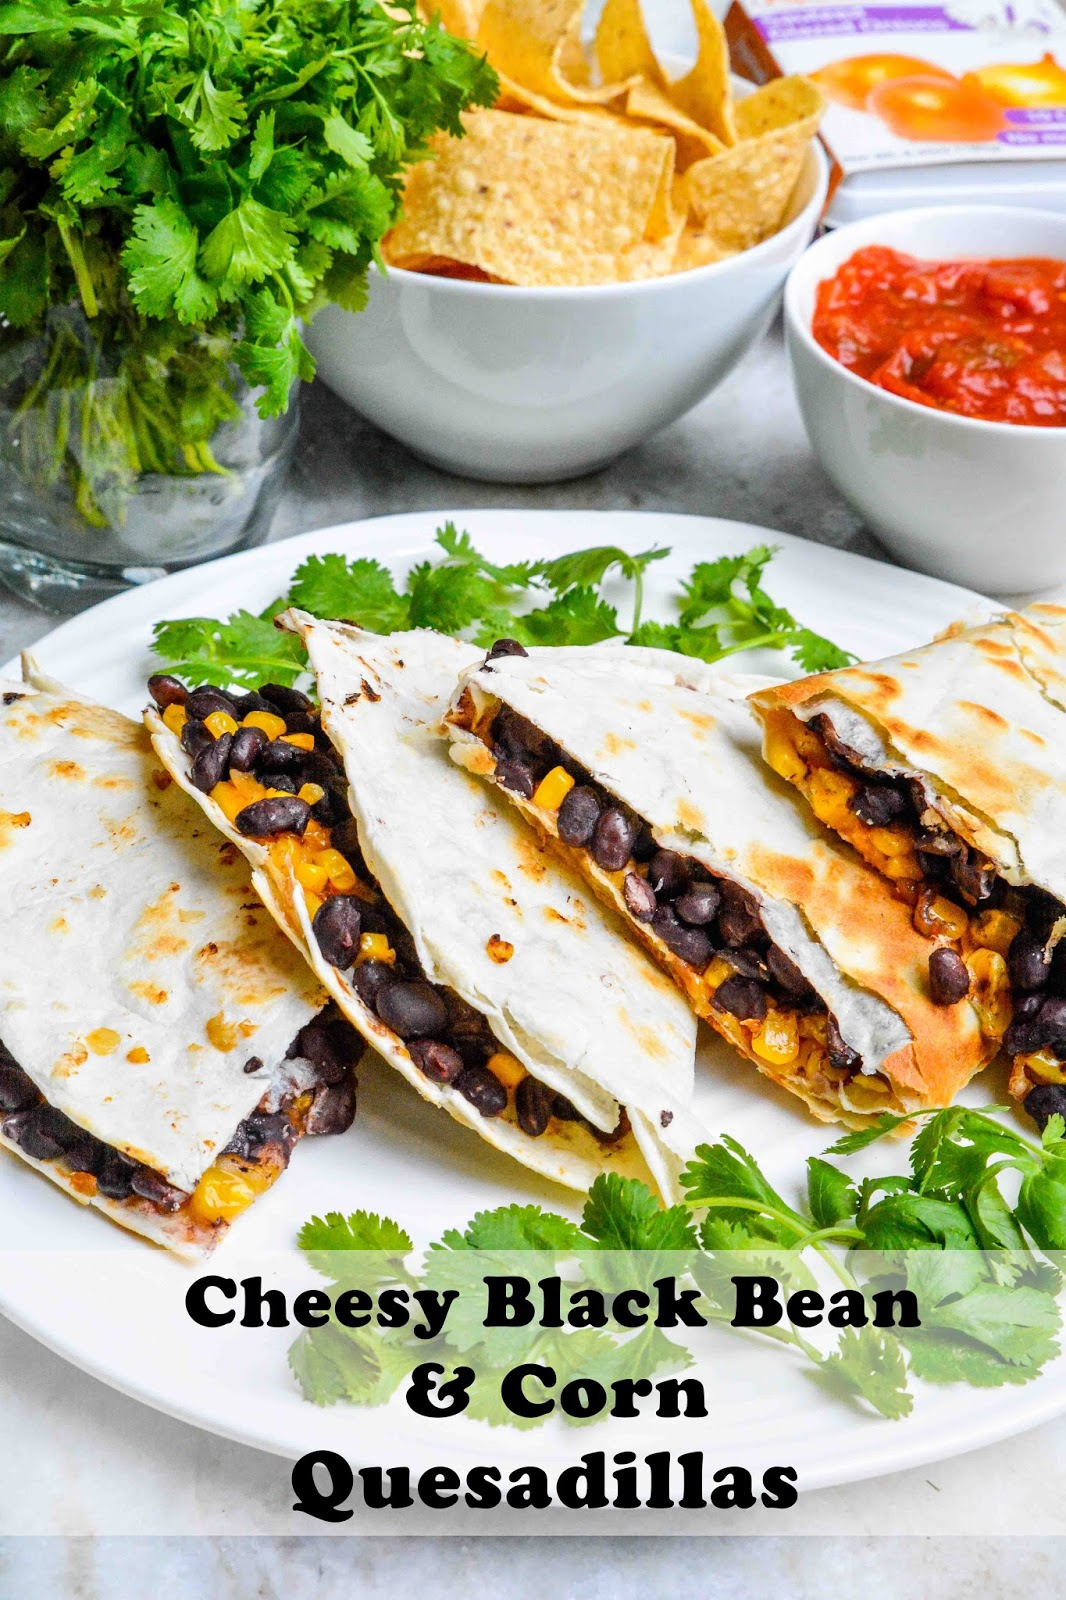 Cheesy Black Bean & Corn Quesadillas